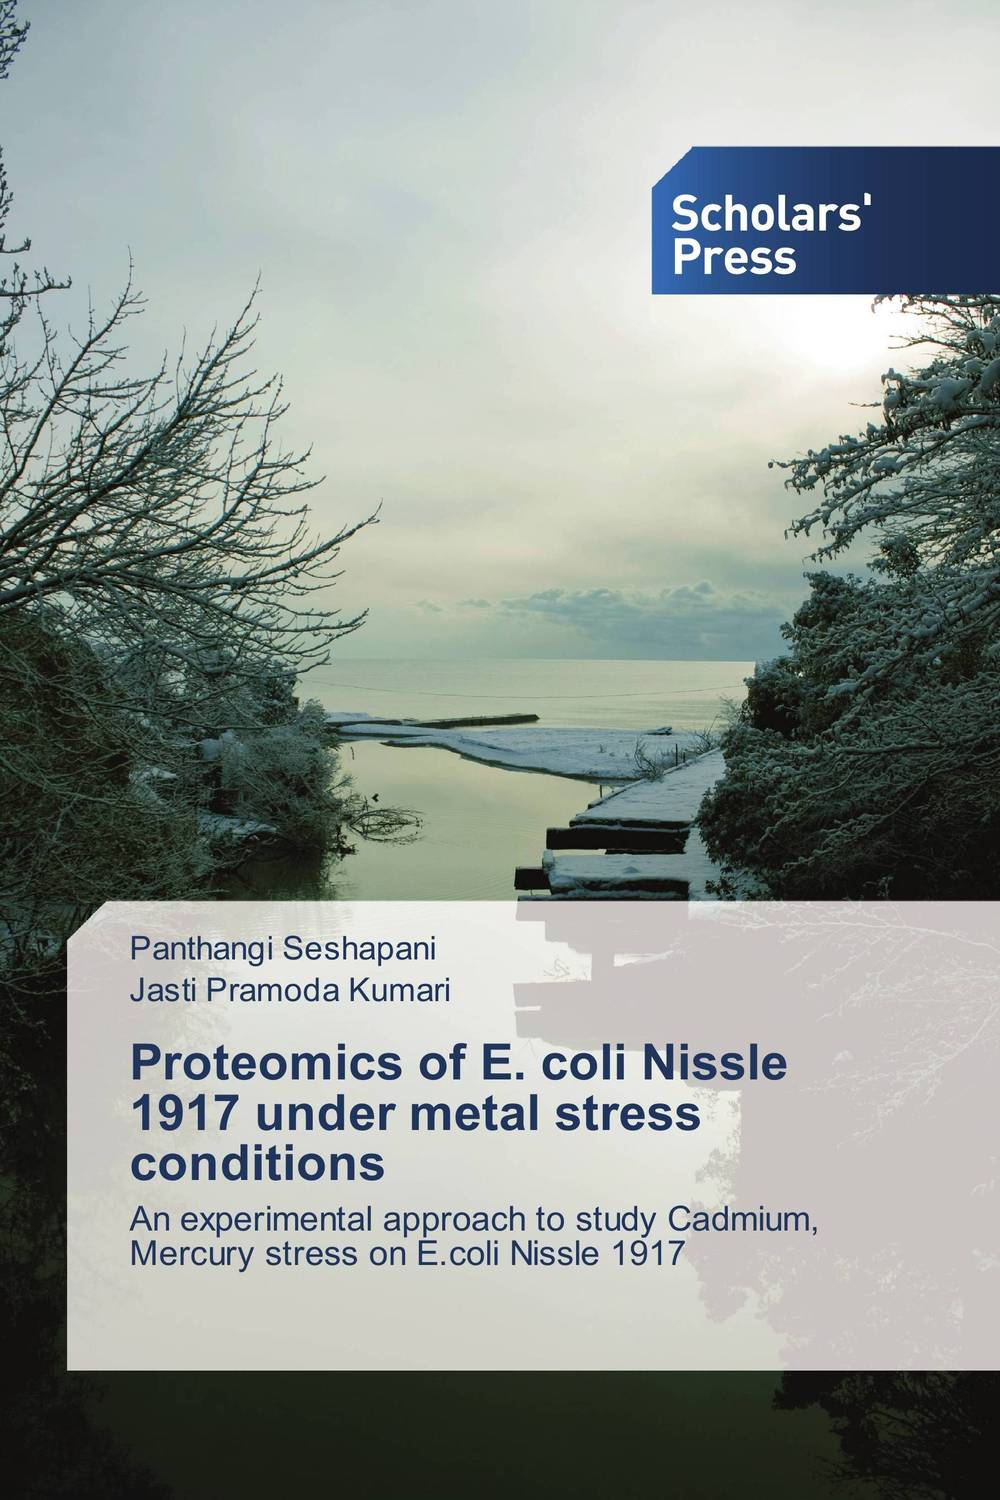 Proteomics of E. coli Nissle 1917 under metal stress conditions deciphering the role of yap4 phosphorylation under stress conditions